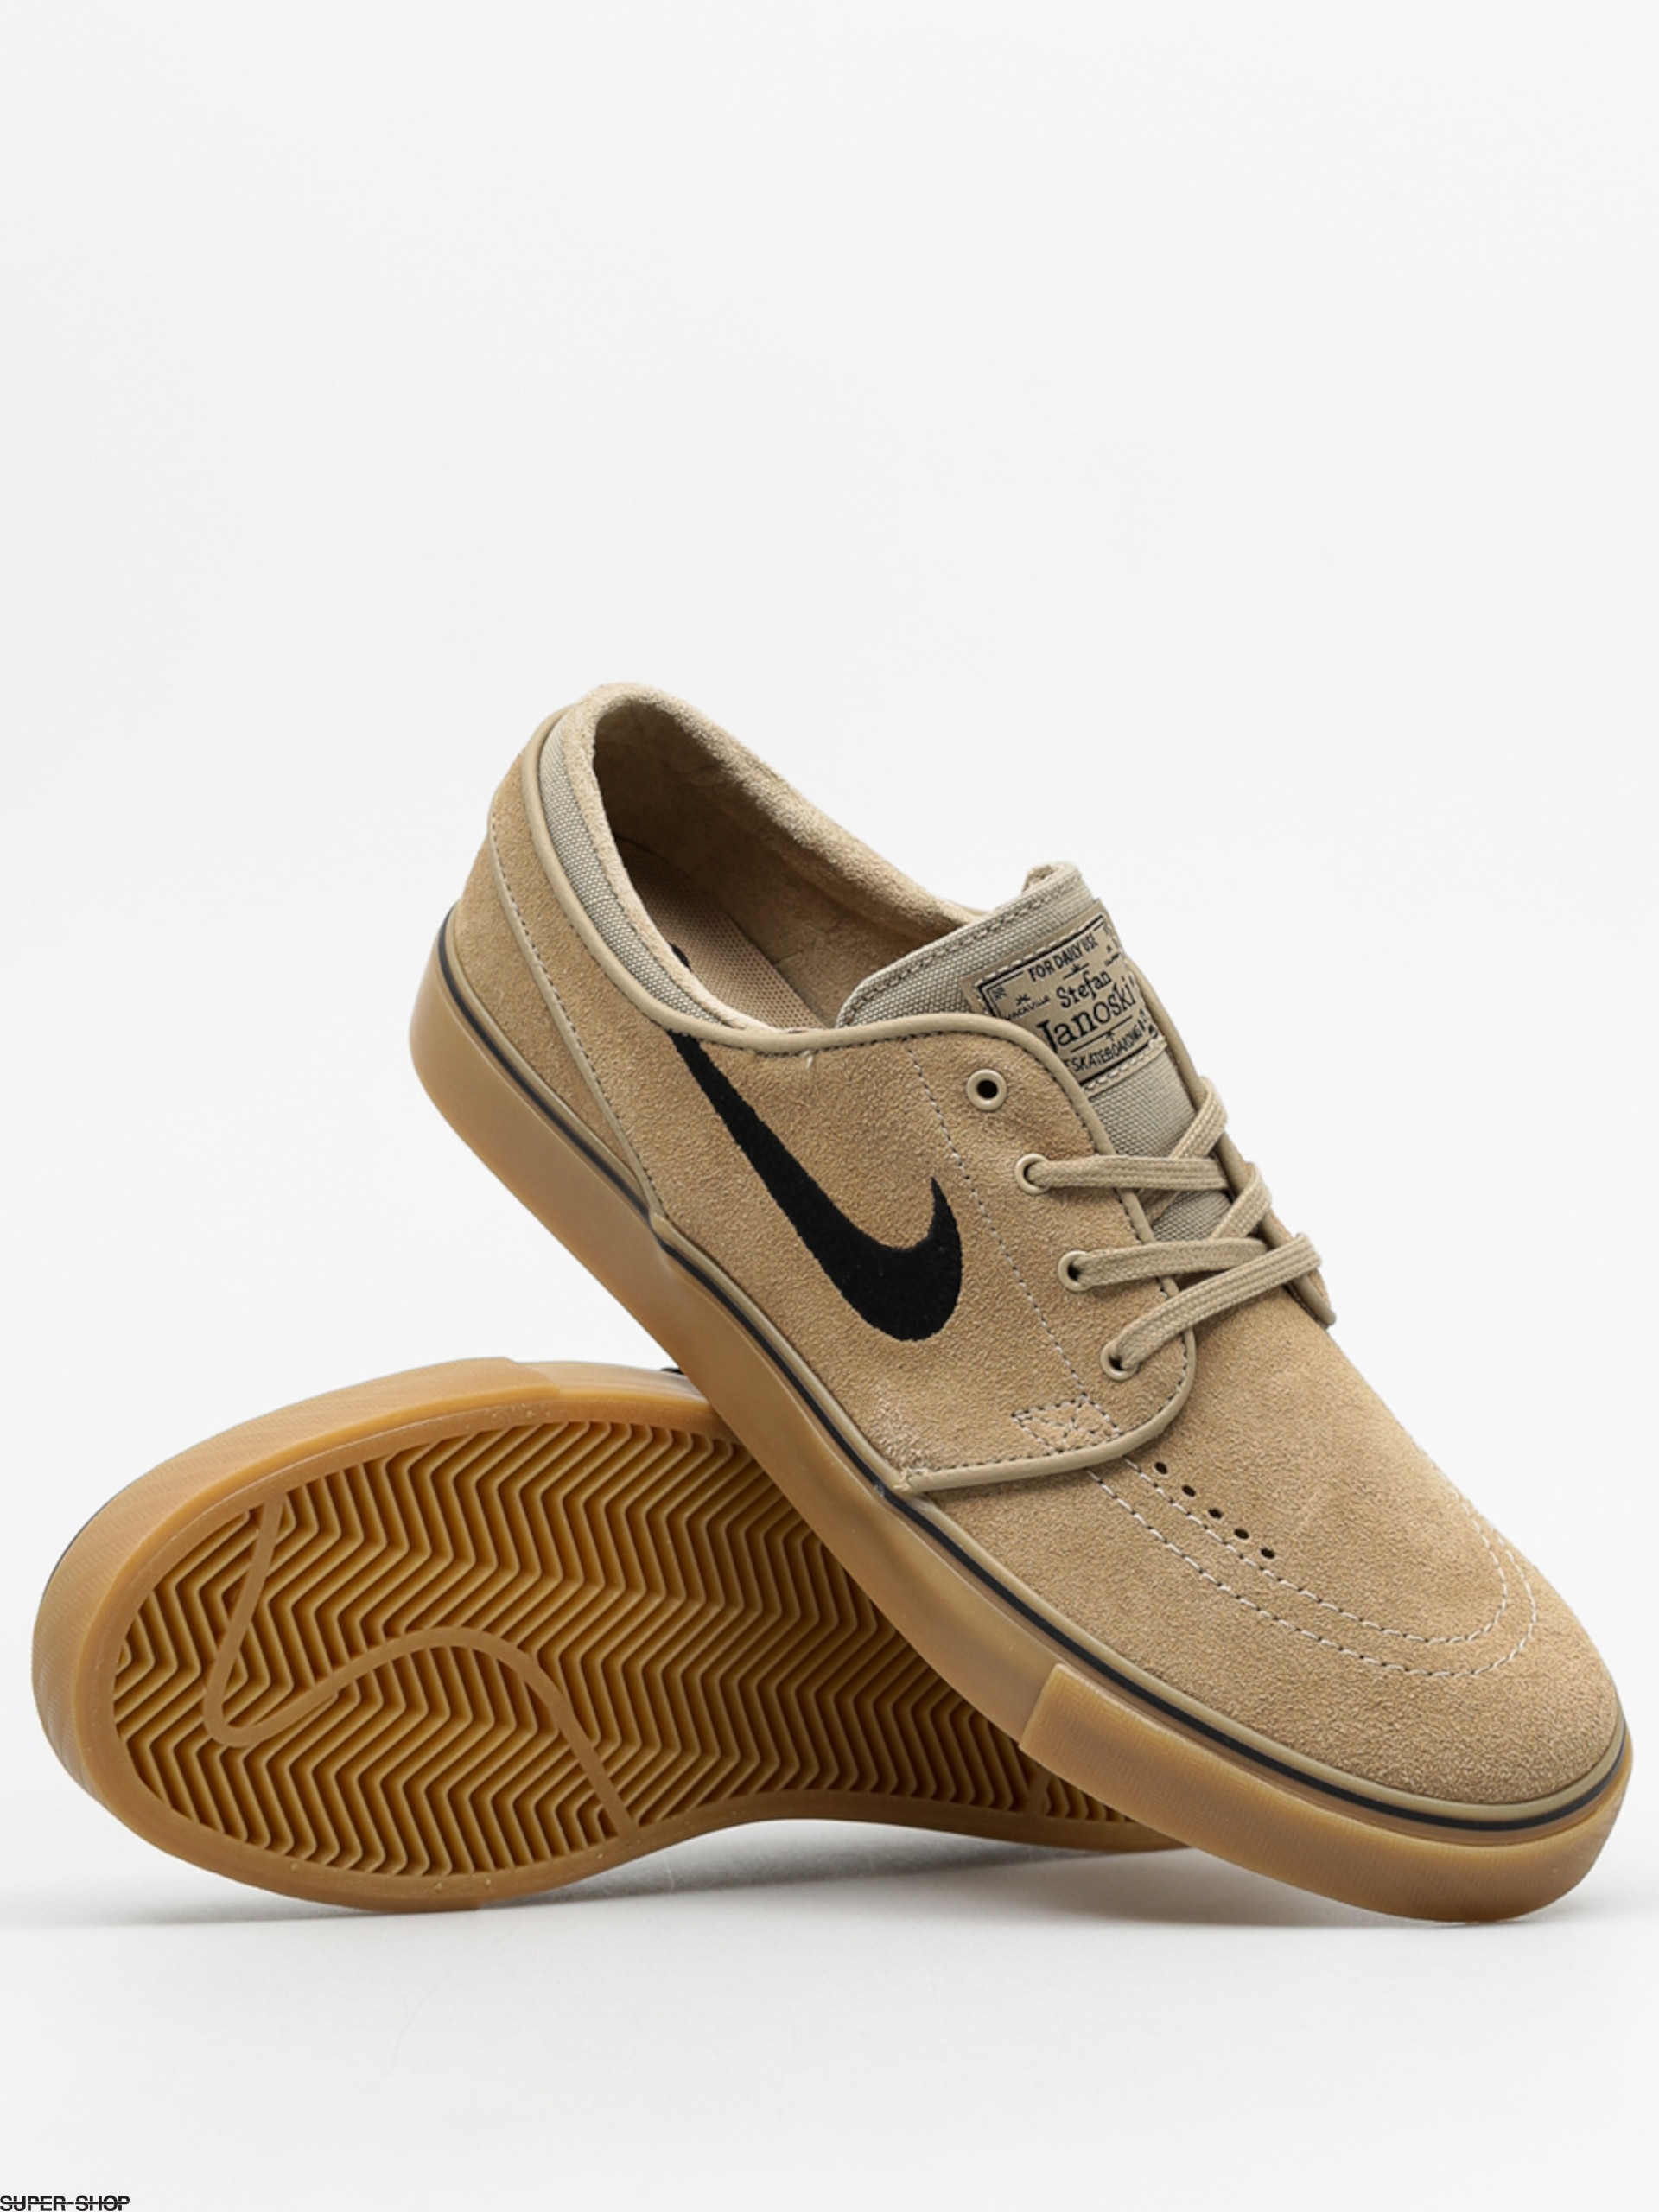 Nike Sb Stefan Janoski Shoes Khaki Black Gum Light Brown